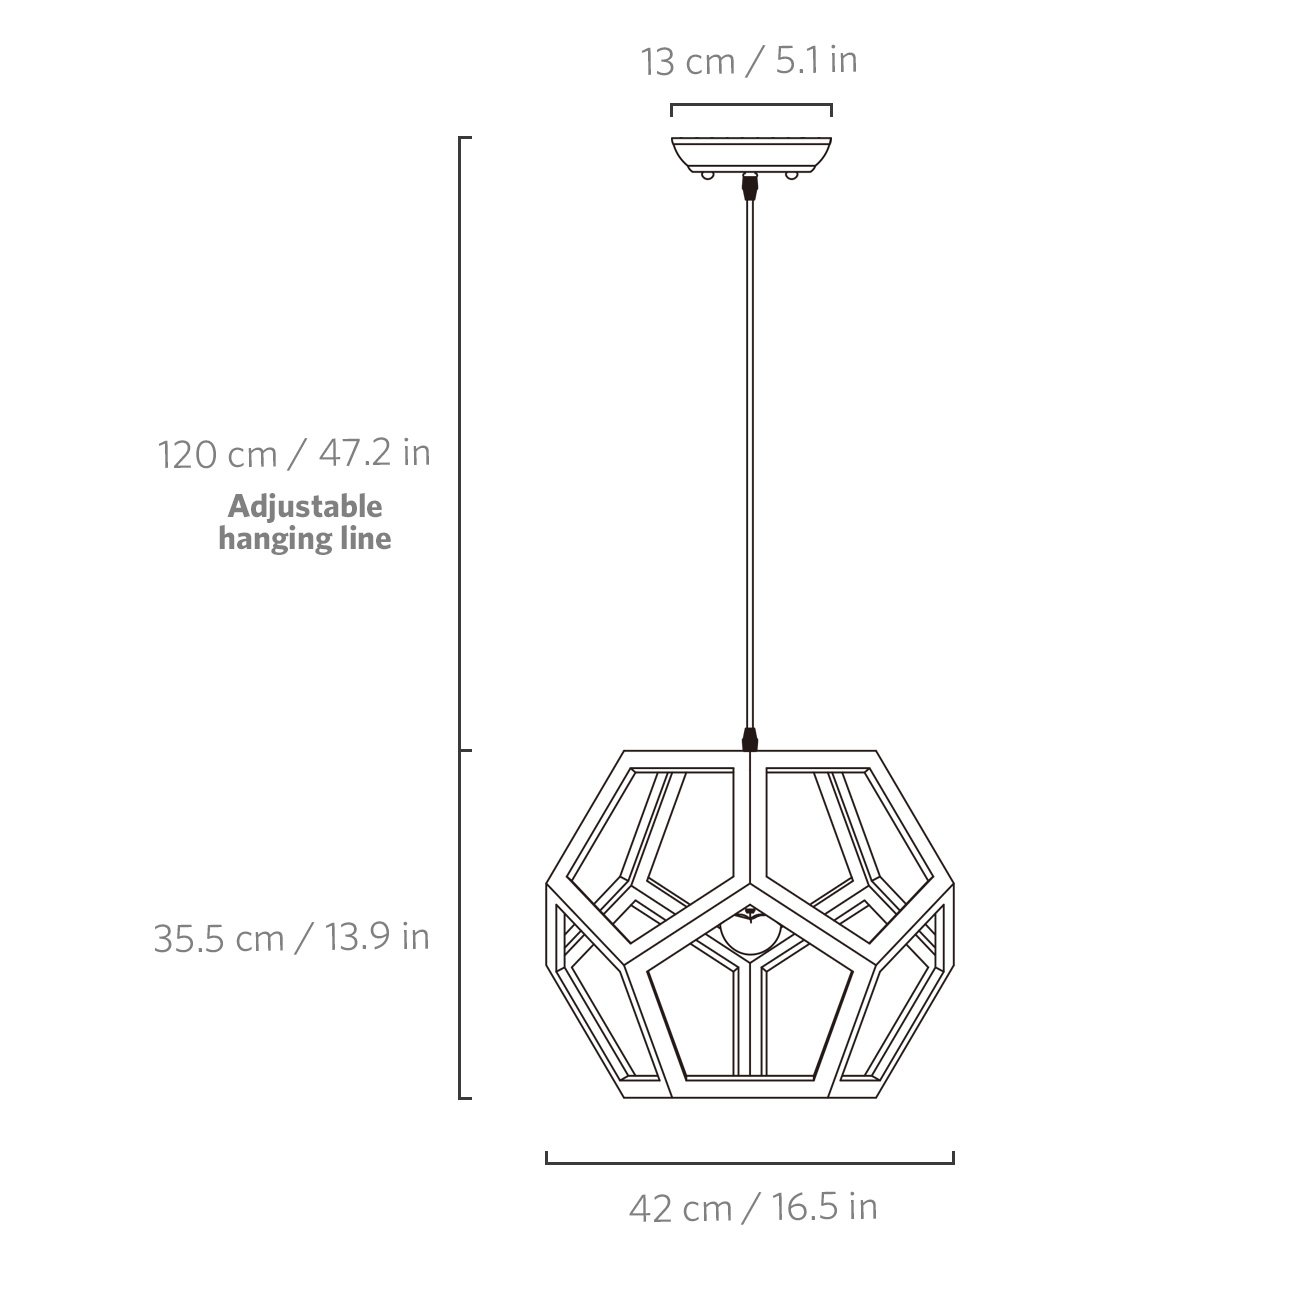 Tomons Hollow Design Wood Ceiling Pendant Lamp, Geometry Shape, E26/E27 Bulb Base, 60 Watts Incandescent Bulb, 12 Watts LED Bulb For Dining Room, Living Room, Bedroom, Study Room - PL1002 by tomons (Image #2)